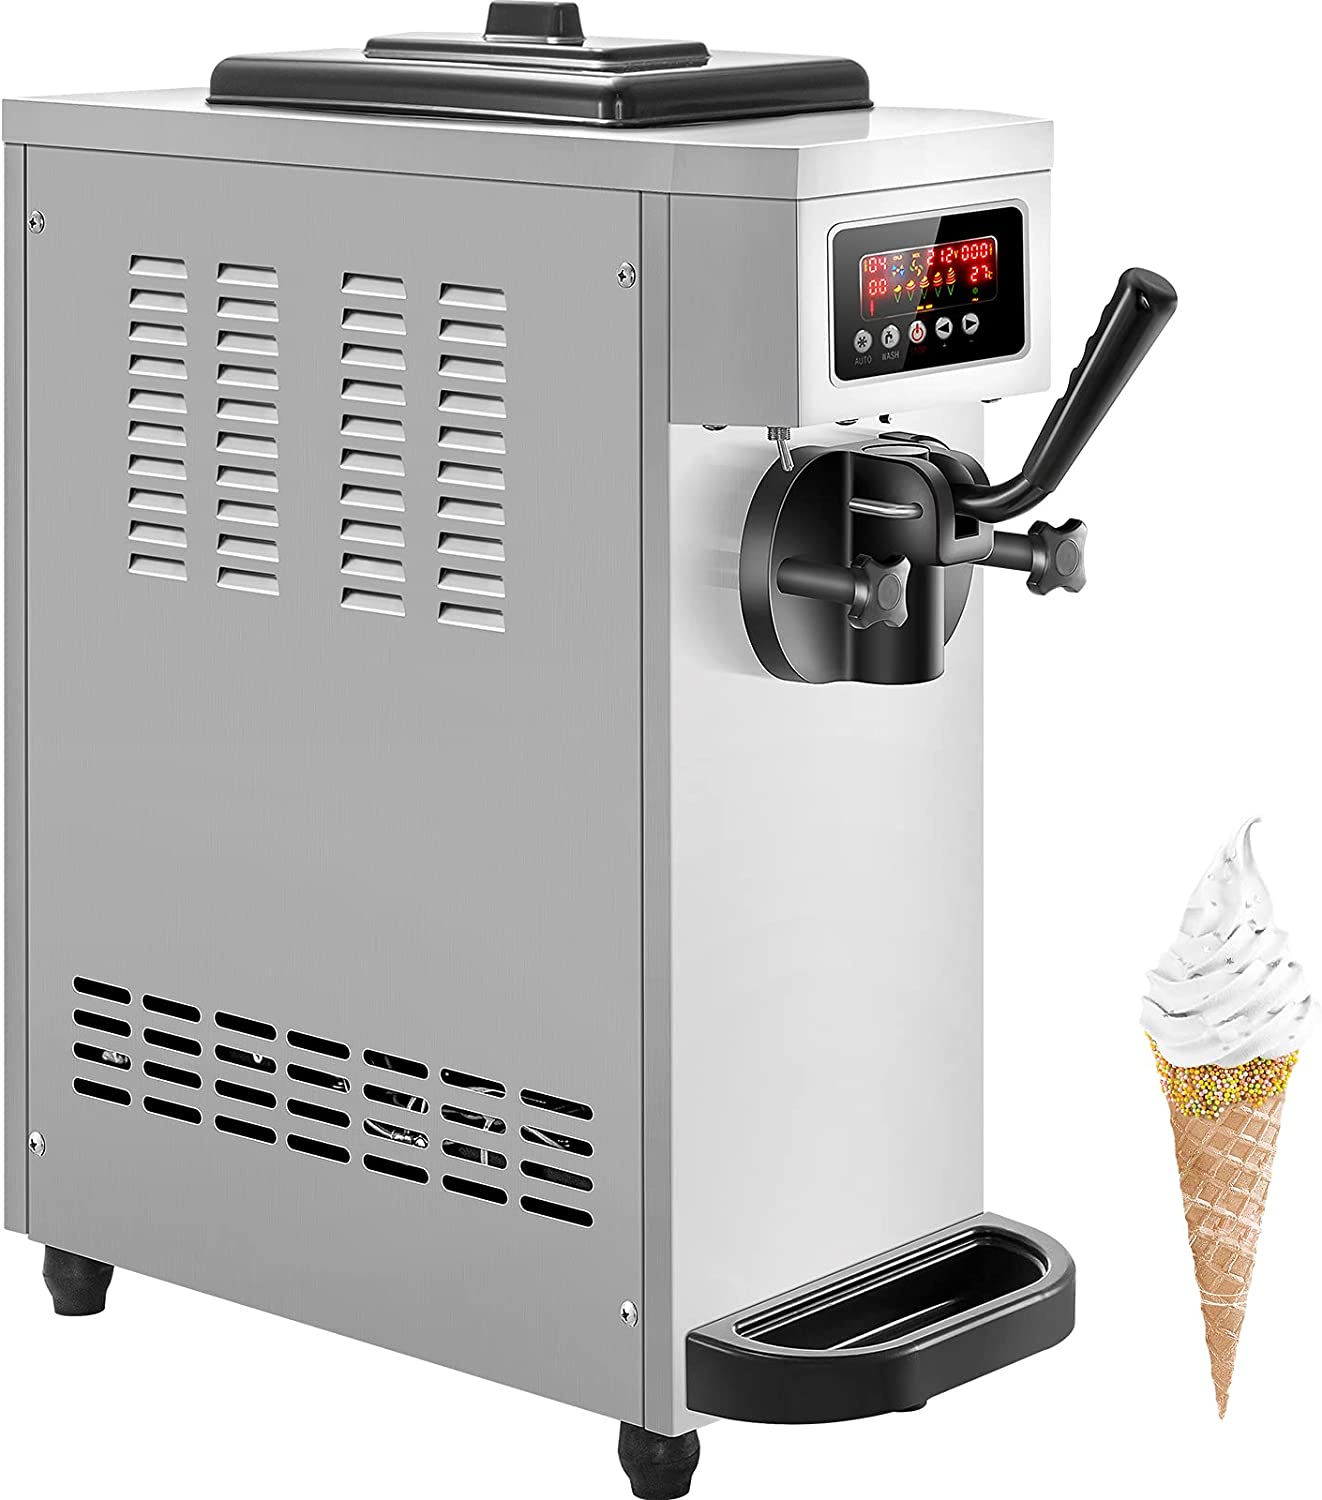 VEVOR Commercial Fashion Ice Cream Machine Mach H Serve Soft New product!! 4.7-5.3Gal